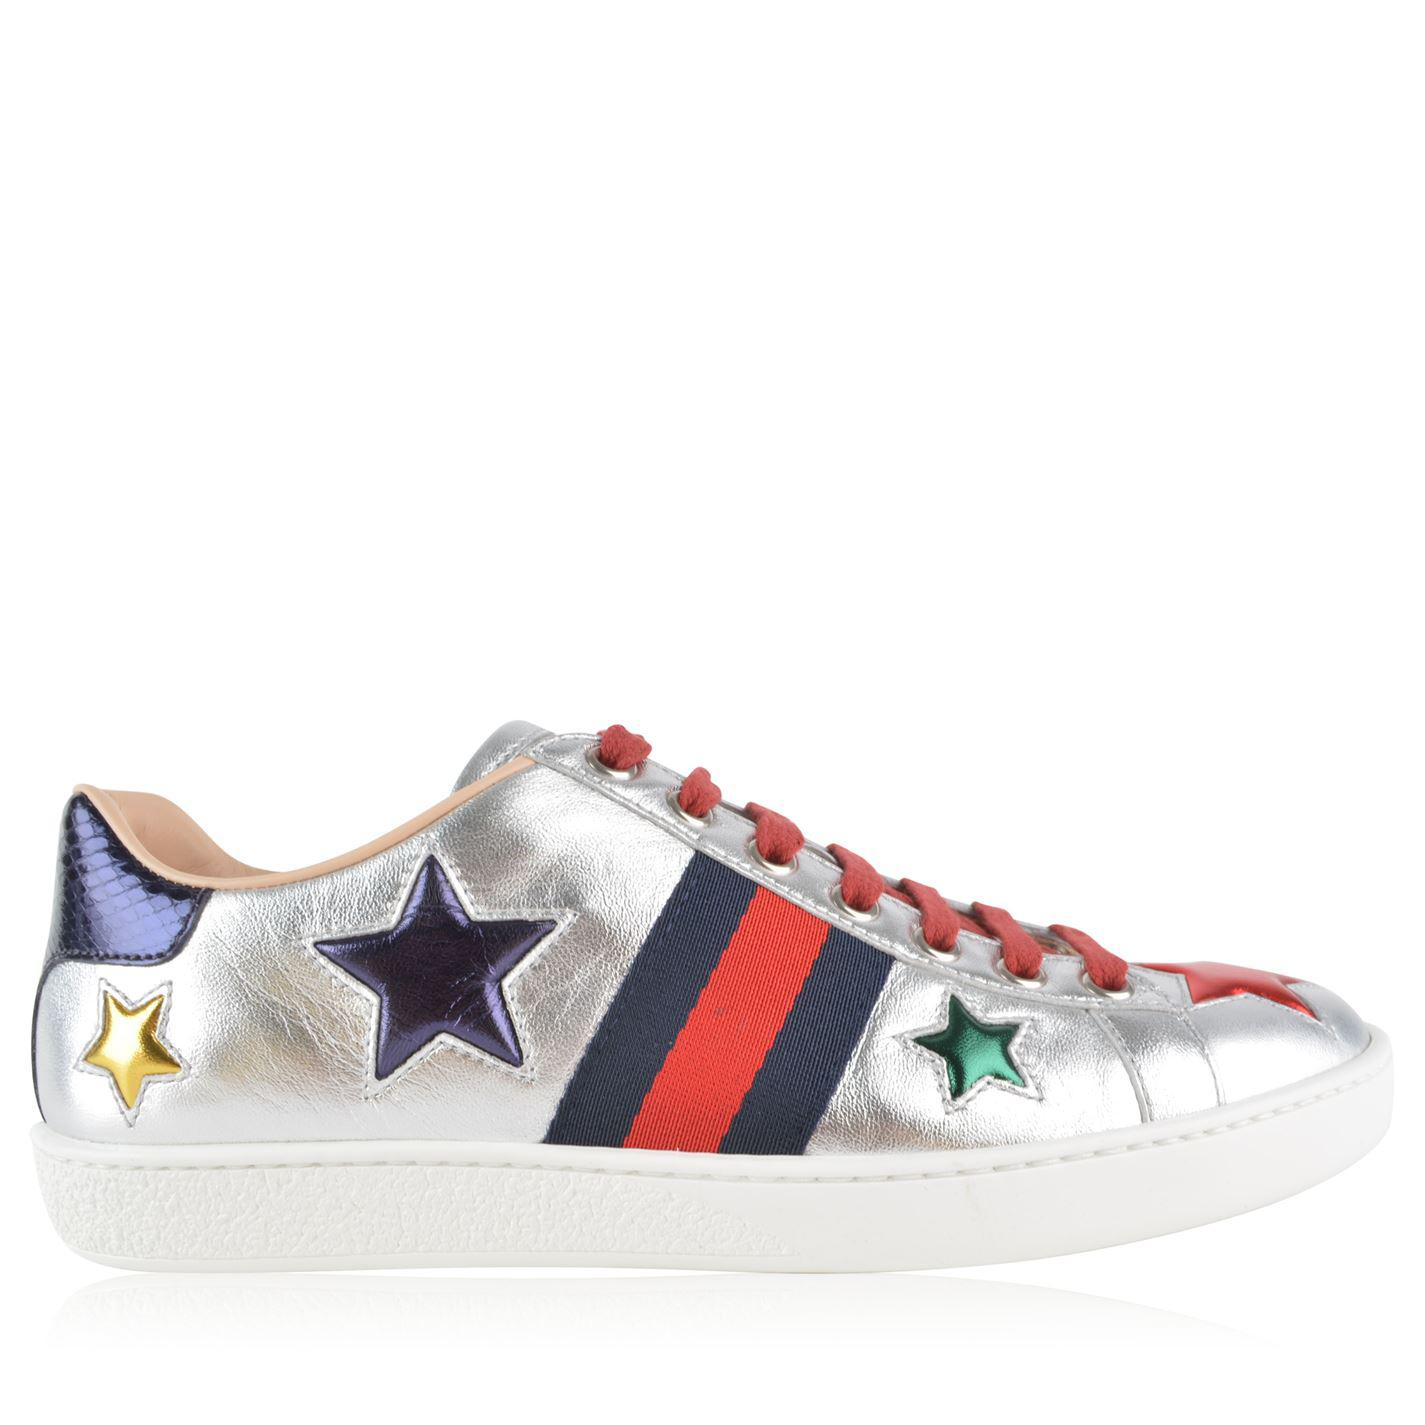 cafd0ff1368 Lyst - Gucci New Ace Star Patch Trainers in Metallic